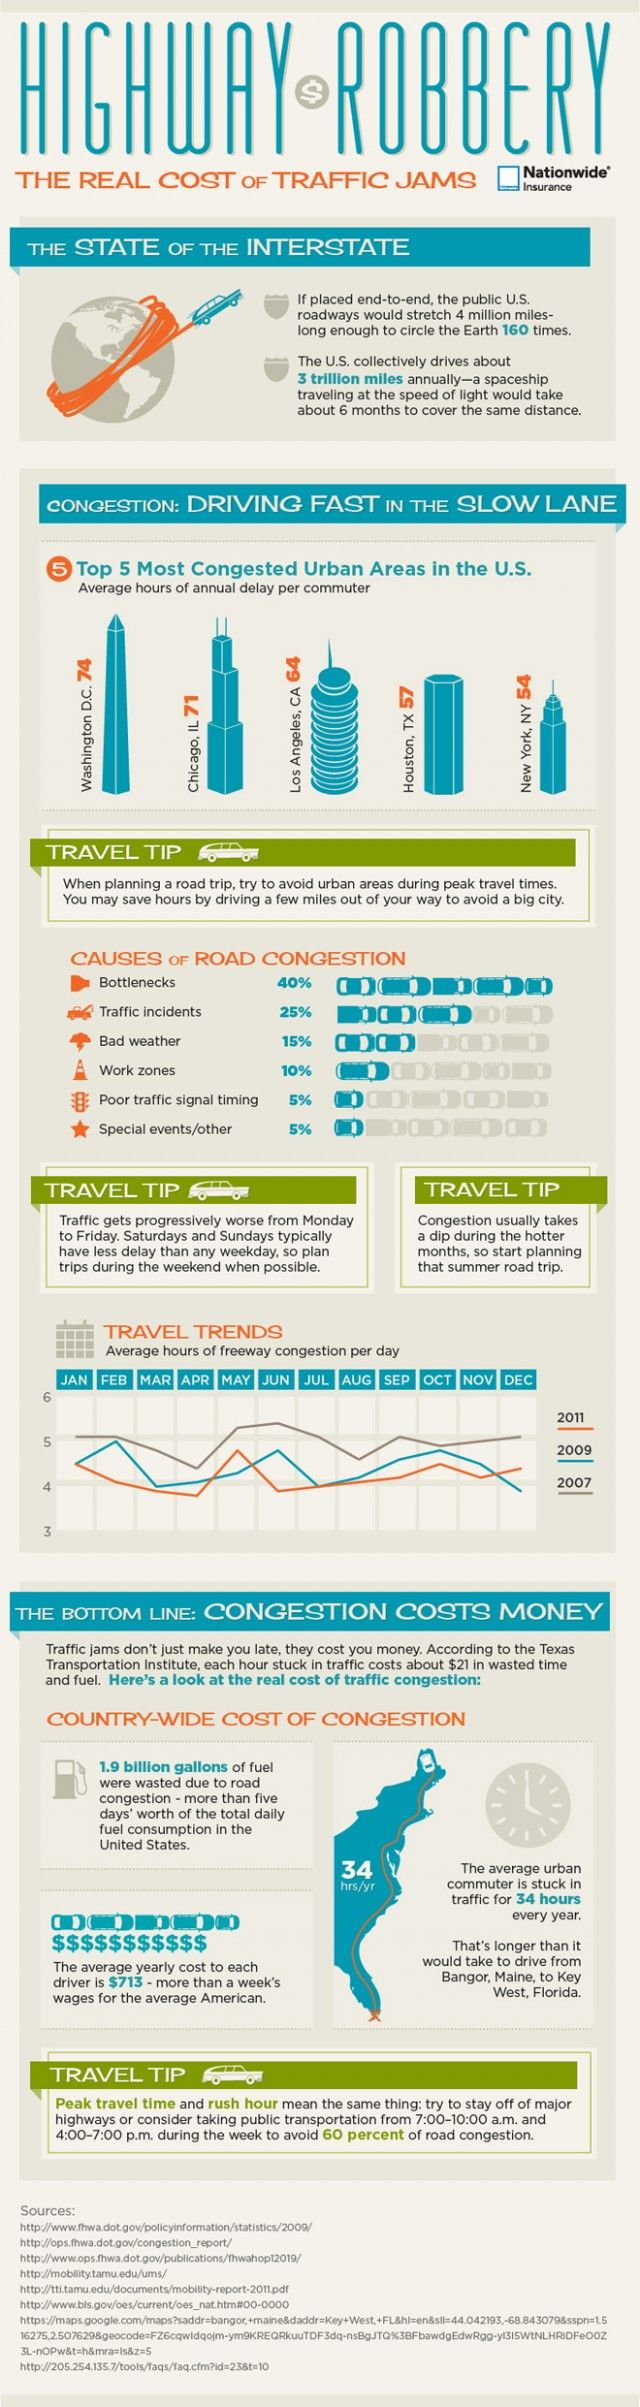 http://dailyinfographic.com/the-real-cost-of-traffic-jams-infographic?utm_source=feedburner_medium=email_campaign=Feed%3A+DailyInfographic+%28Daily+Infographic%29  making it abundantly clear why we need to invest in improving our nation's transportation ~ including RAILS!!! hi-speed rail transport is necessary!!!